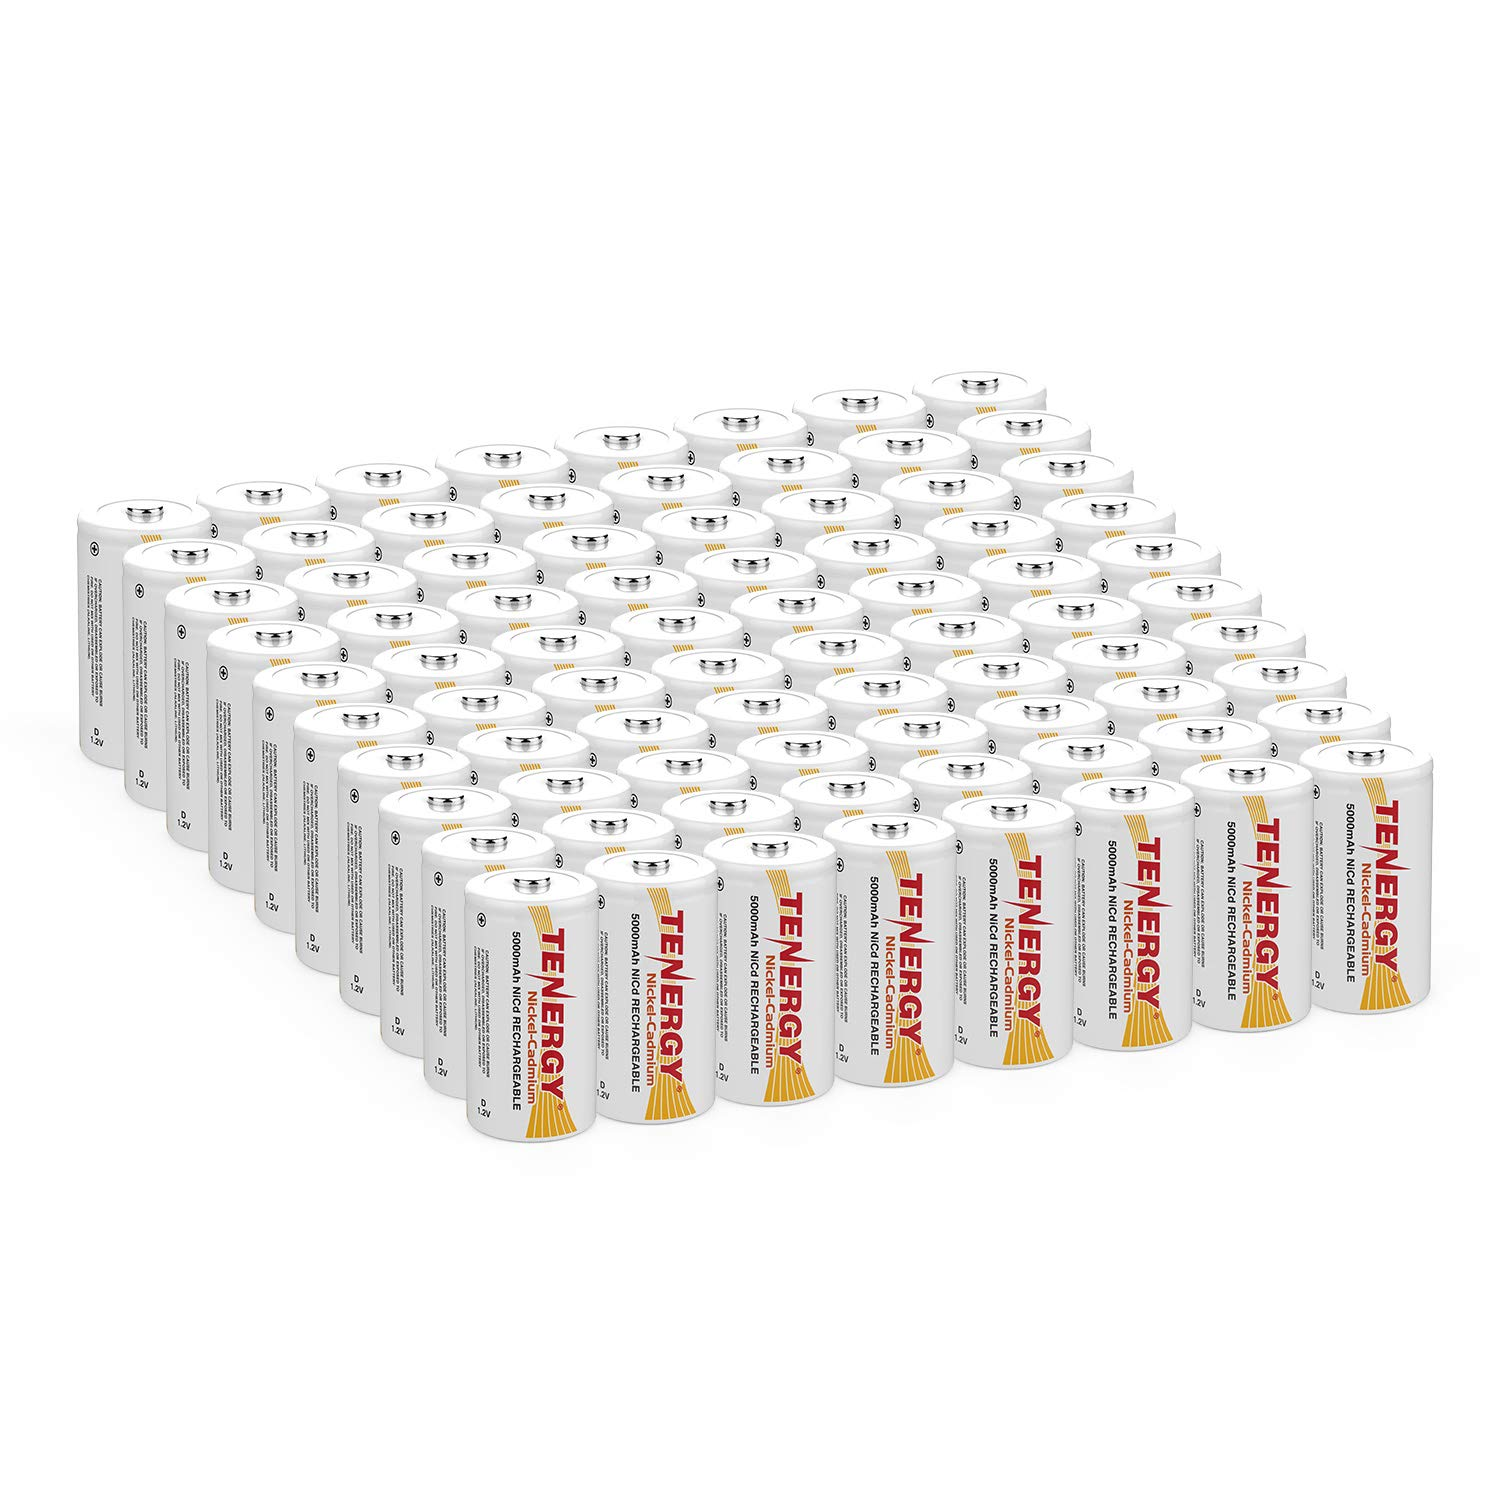 Tenergy D Size 5000mAh NiCd Button Top Rechargeable Batteries, 80 Pack